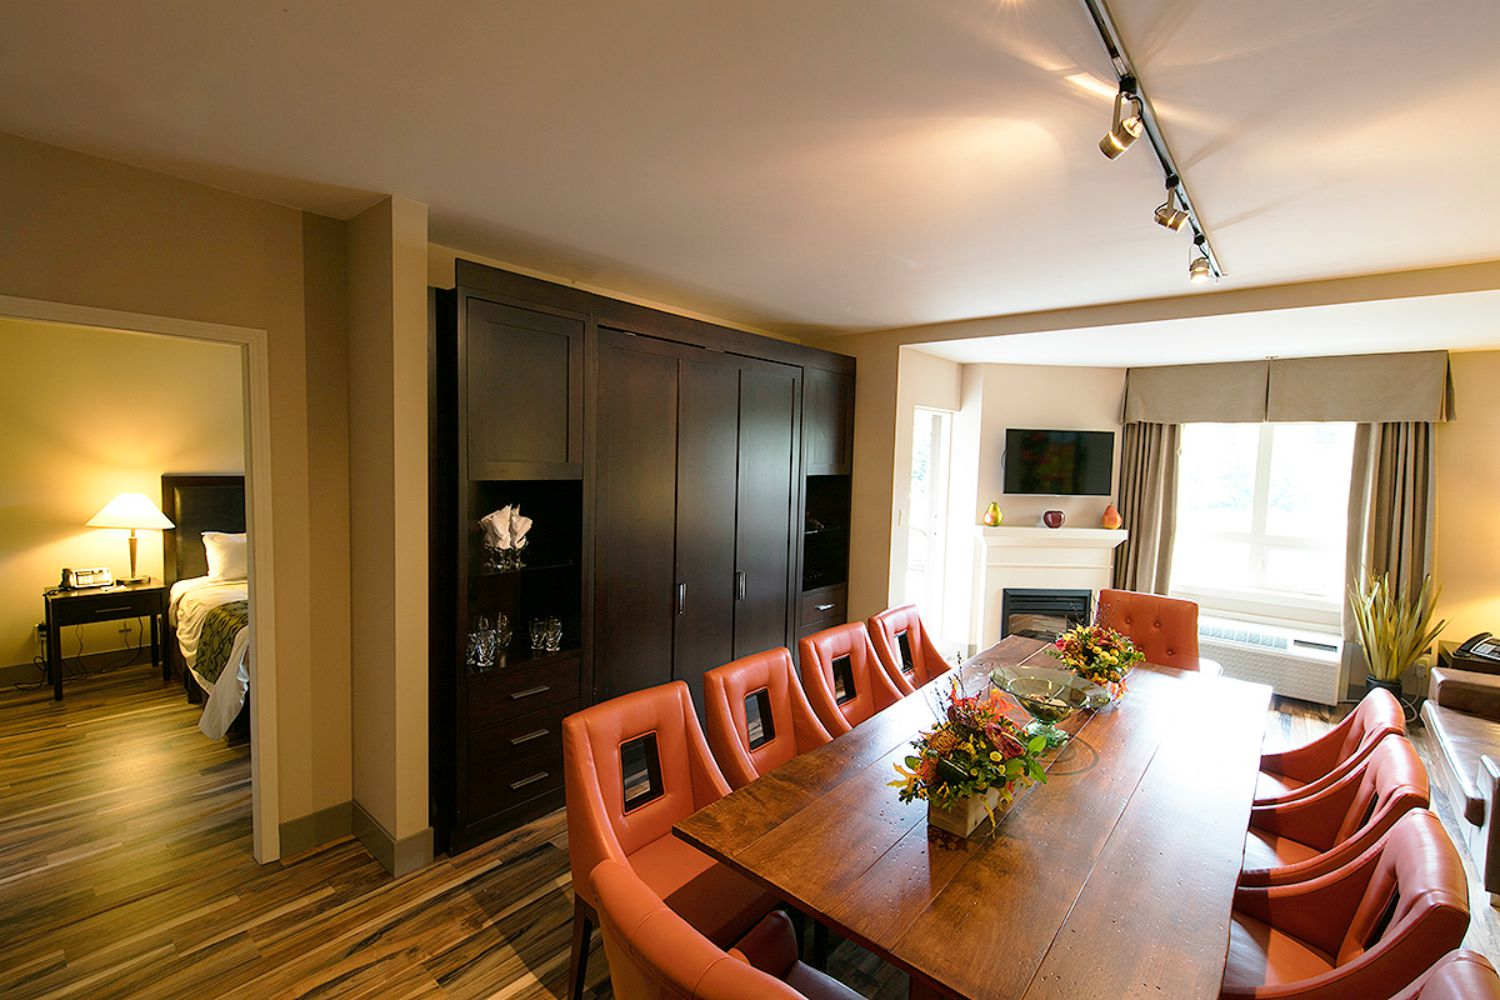 2 Bedroom and Boardroom